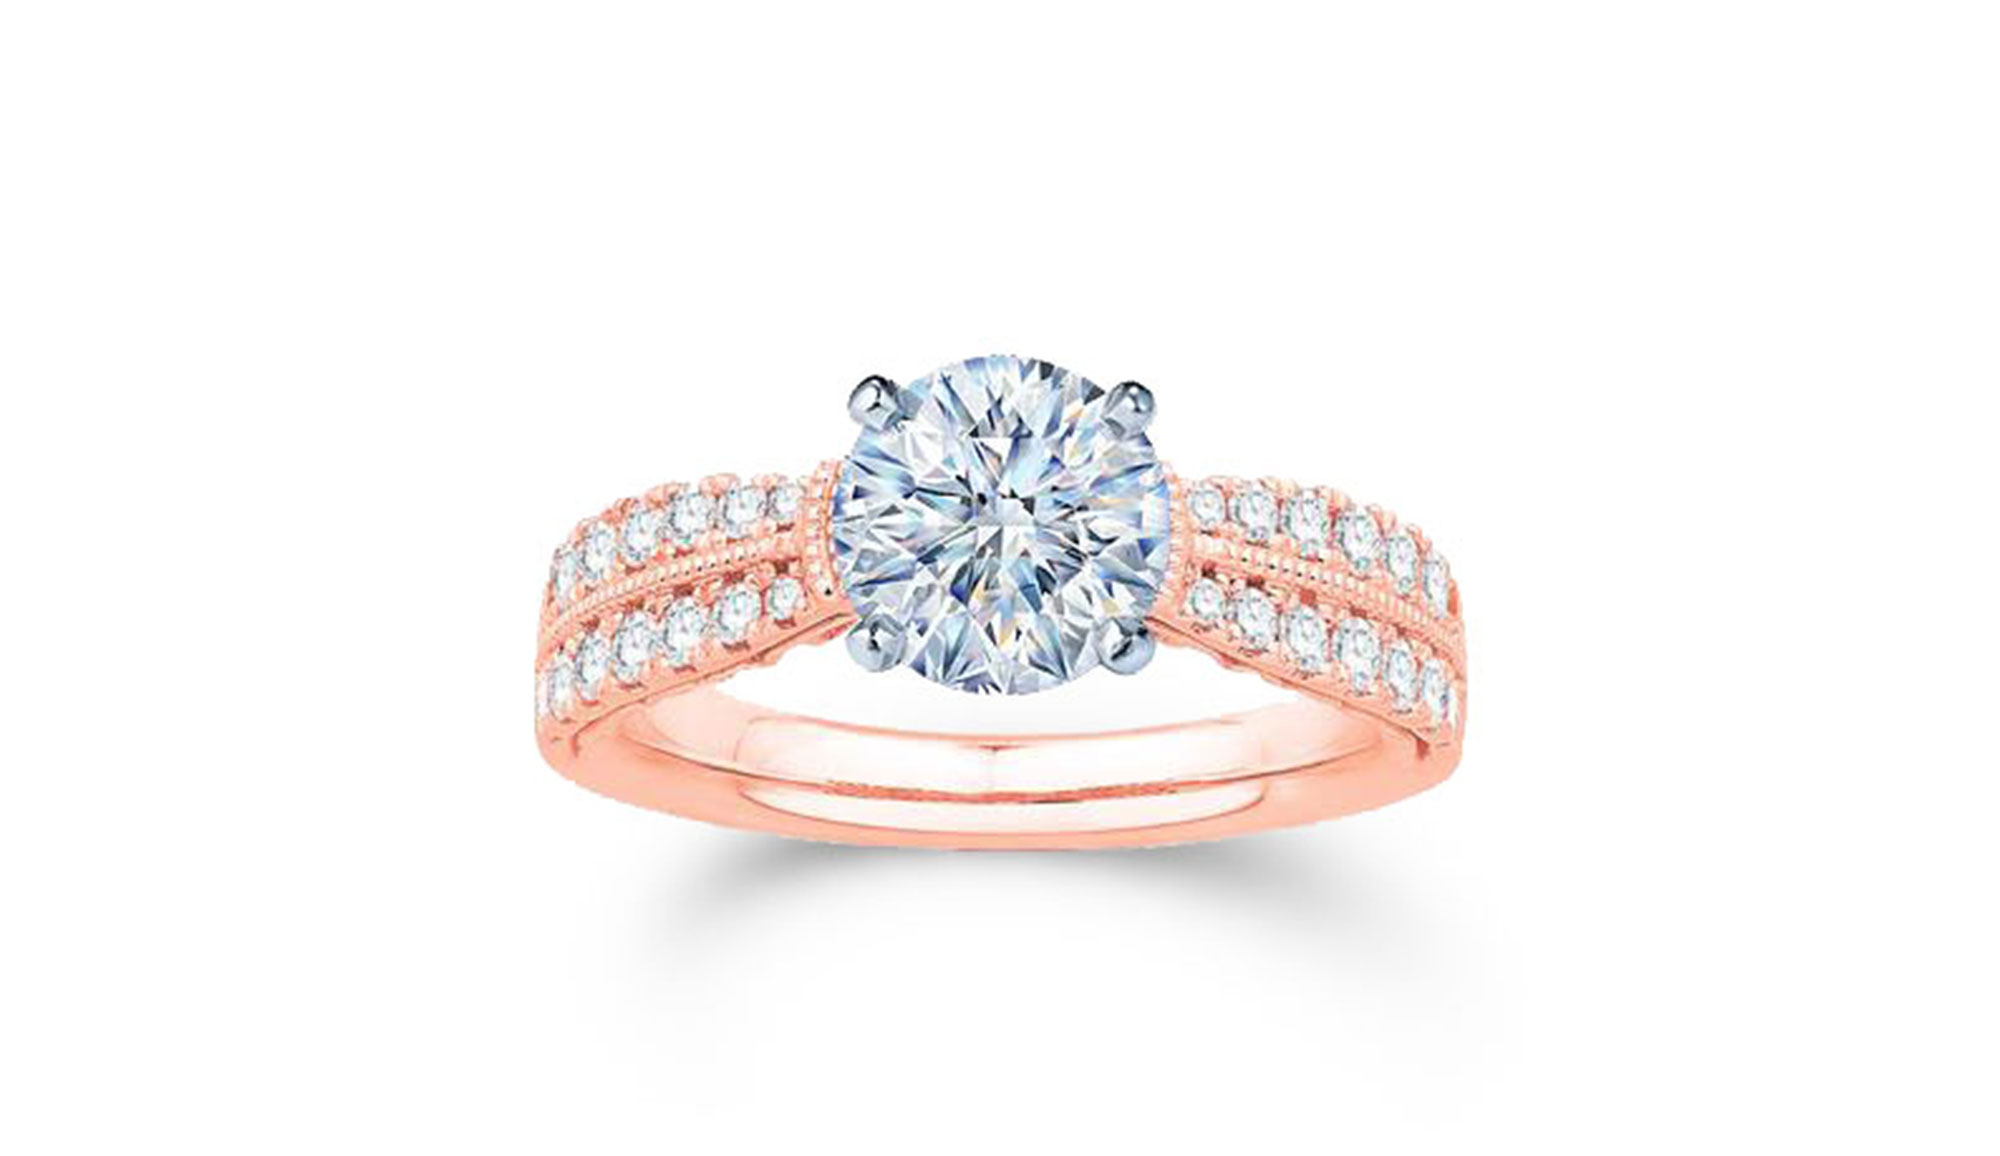 Attractive rose gold ring - View Now